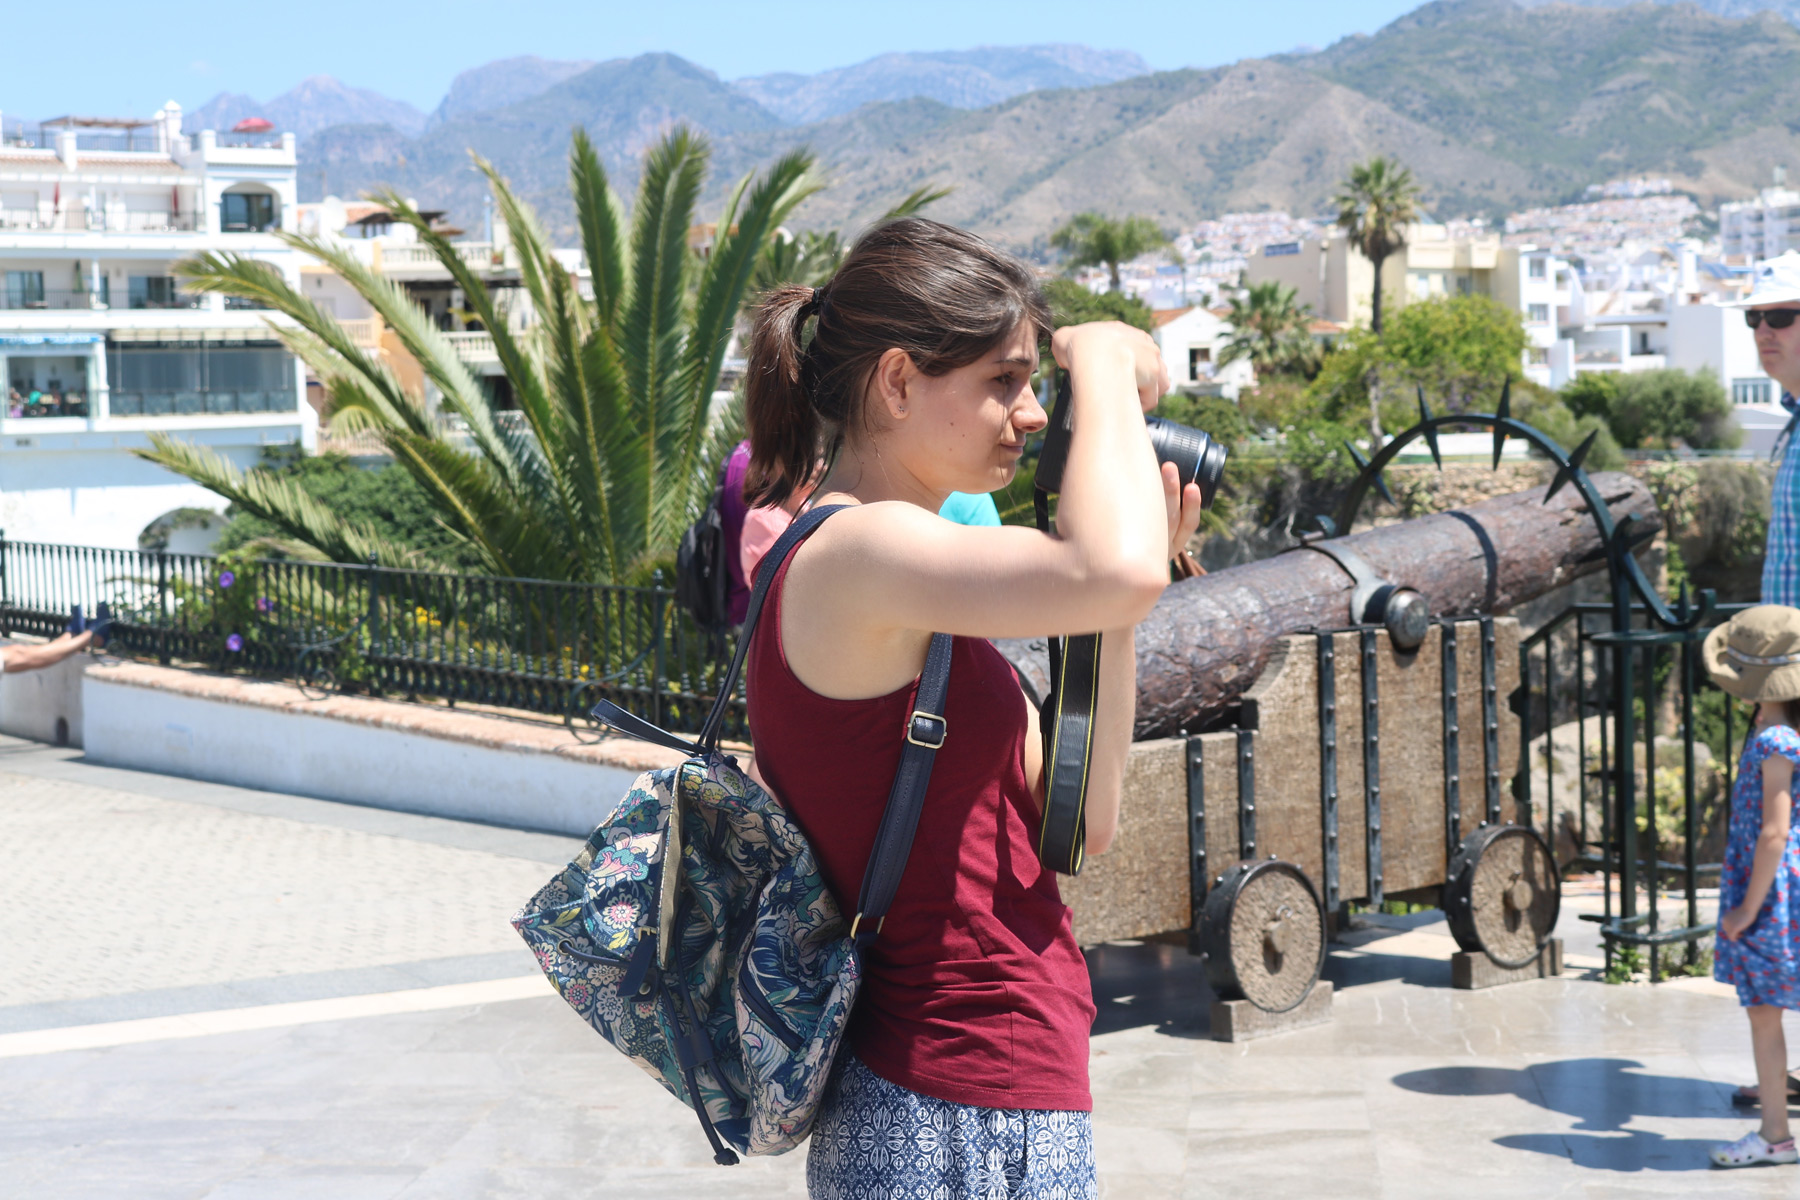 A SPANISH ADVENTURE IN FRIGILIANA, NERJA AND MALAGA